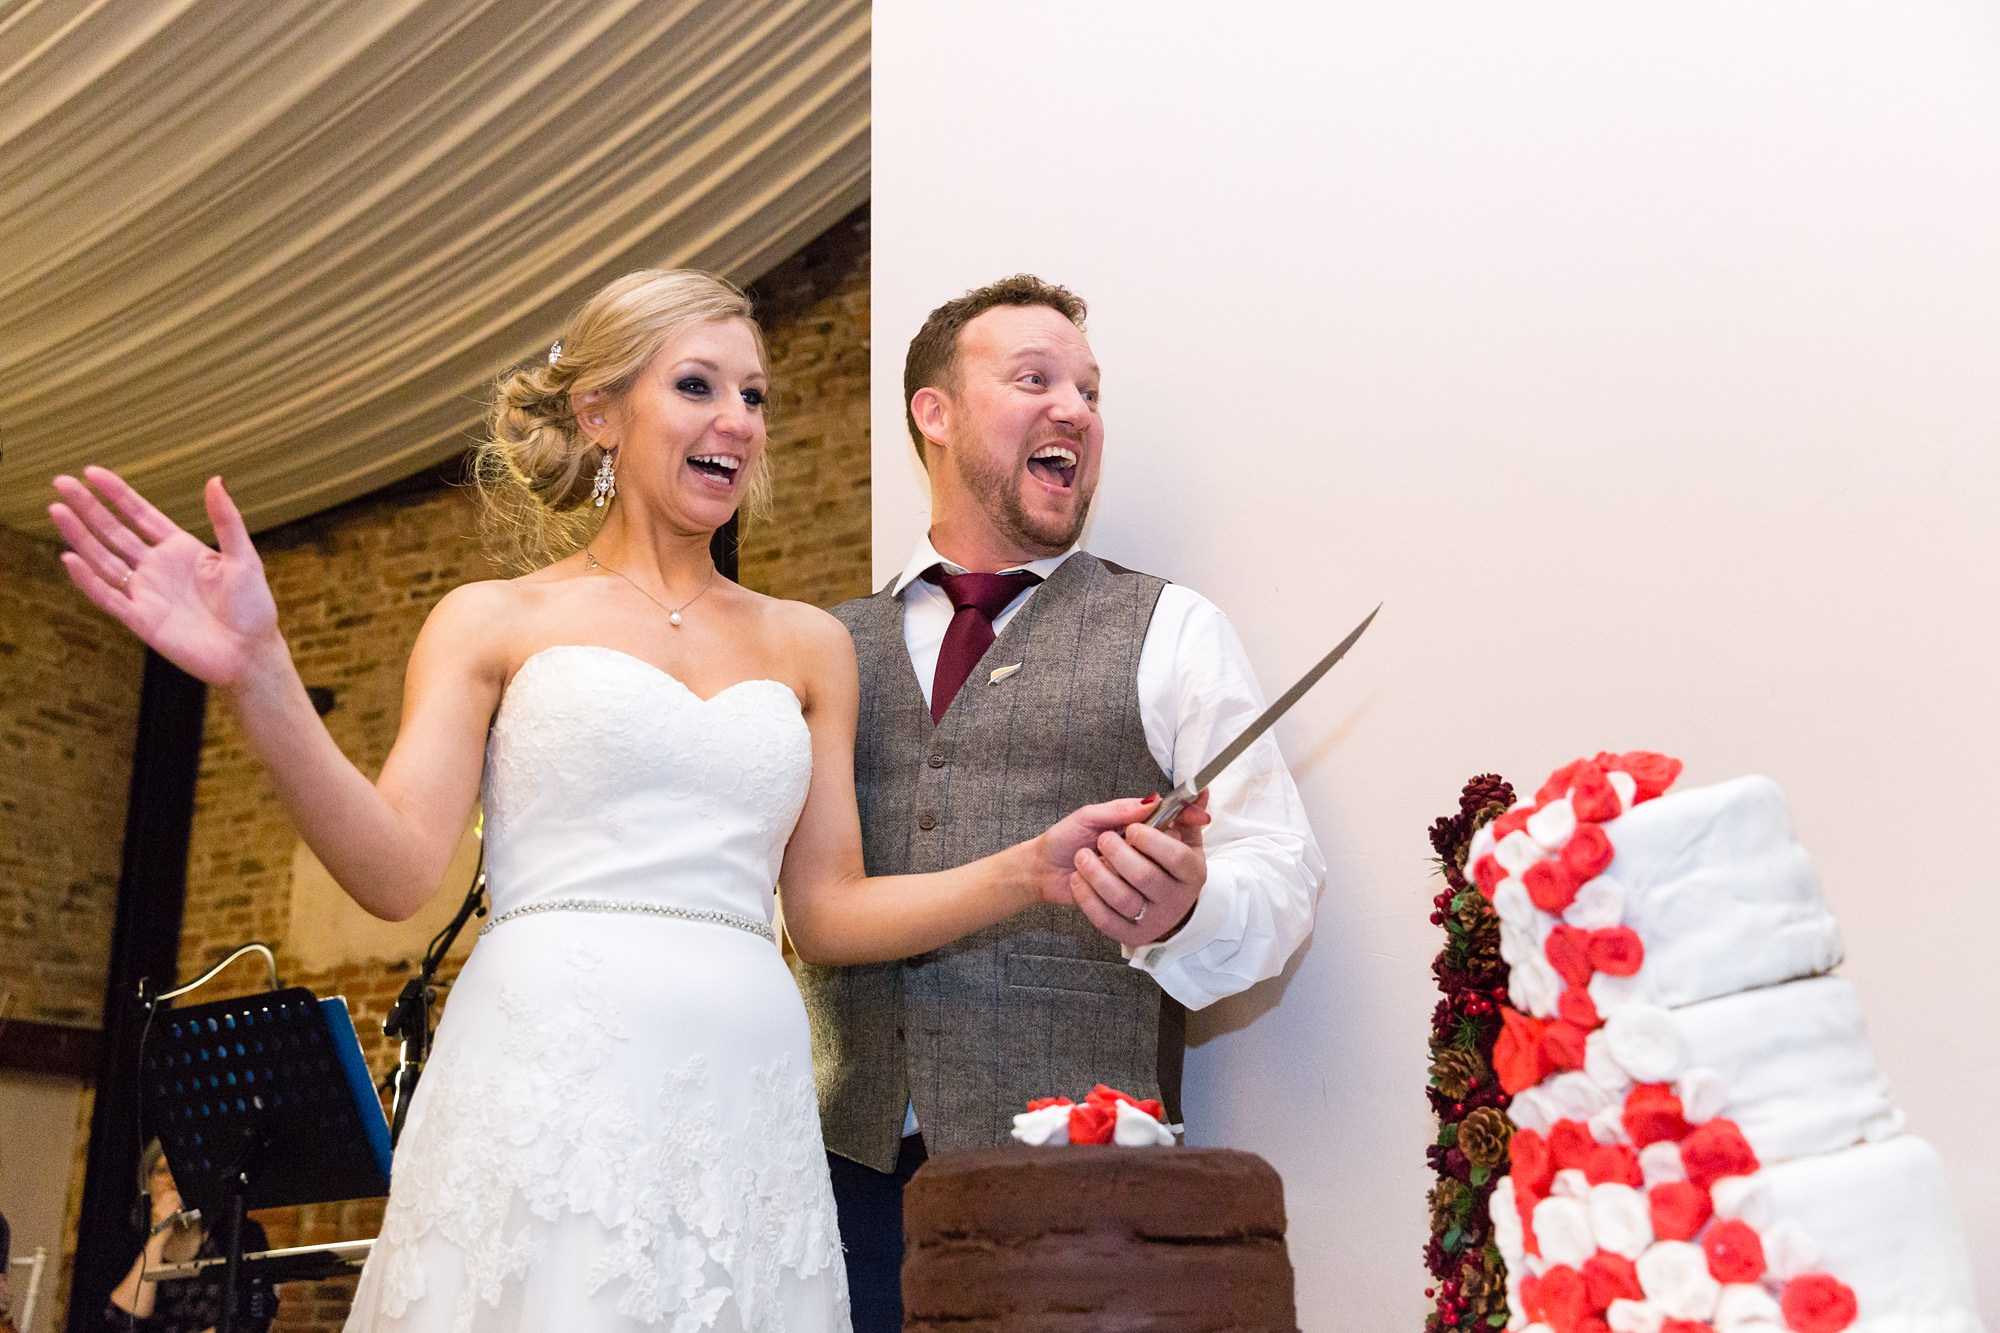 Funny Cake Cutting Photograph